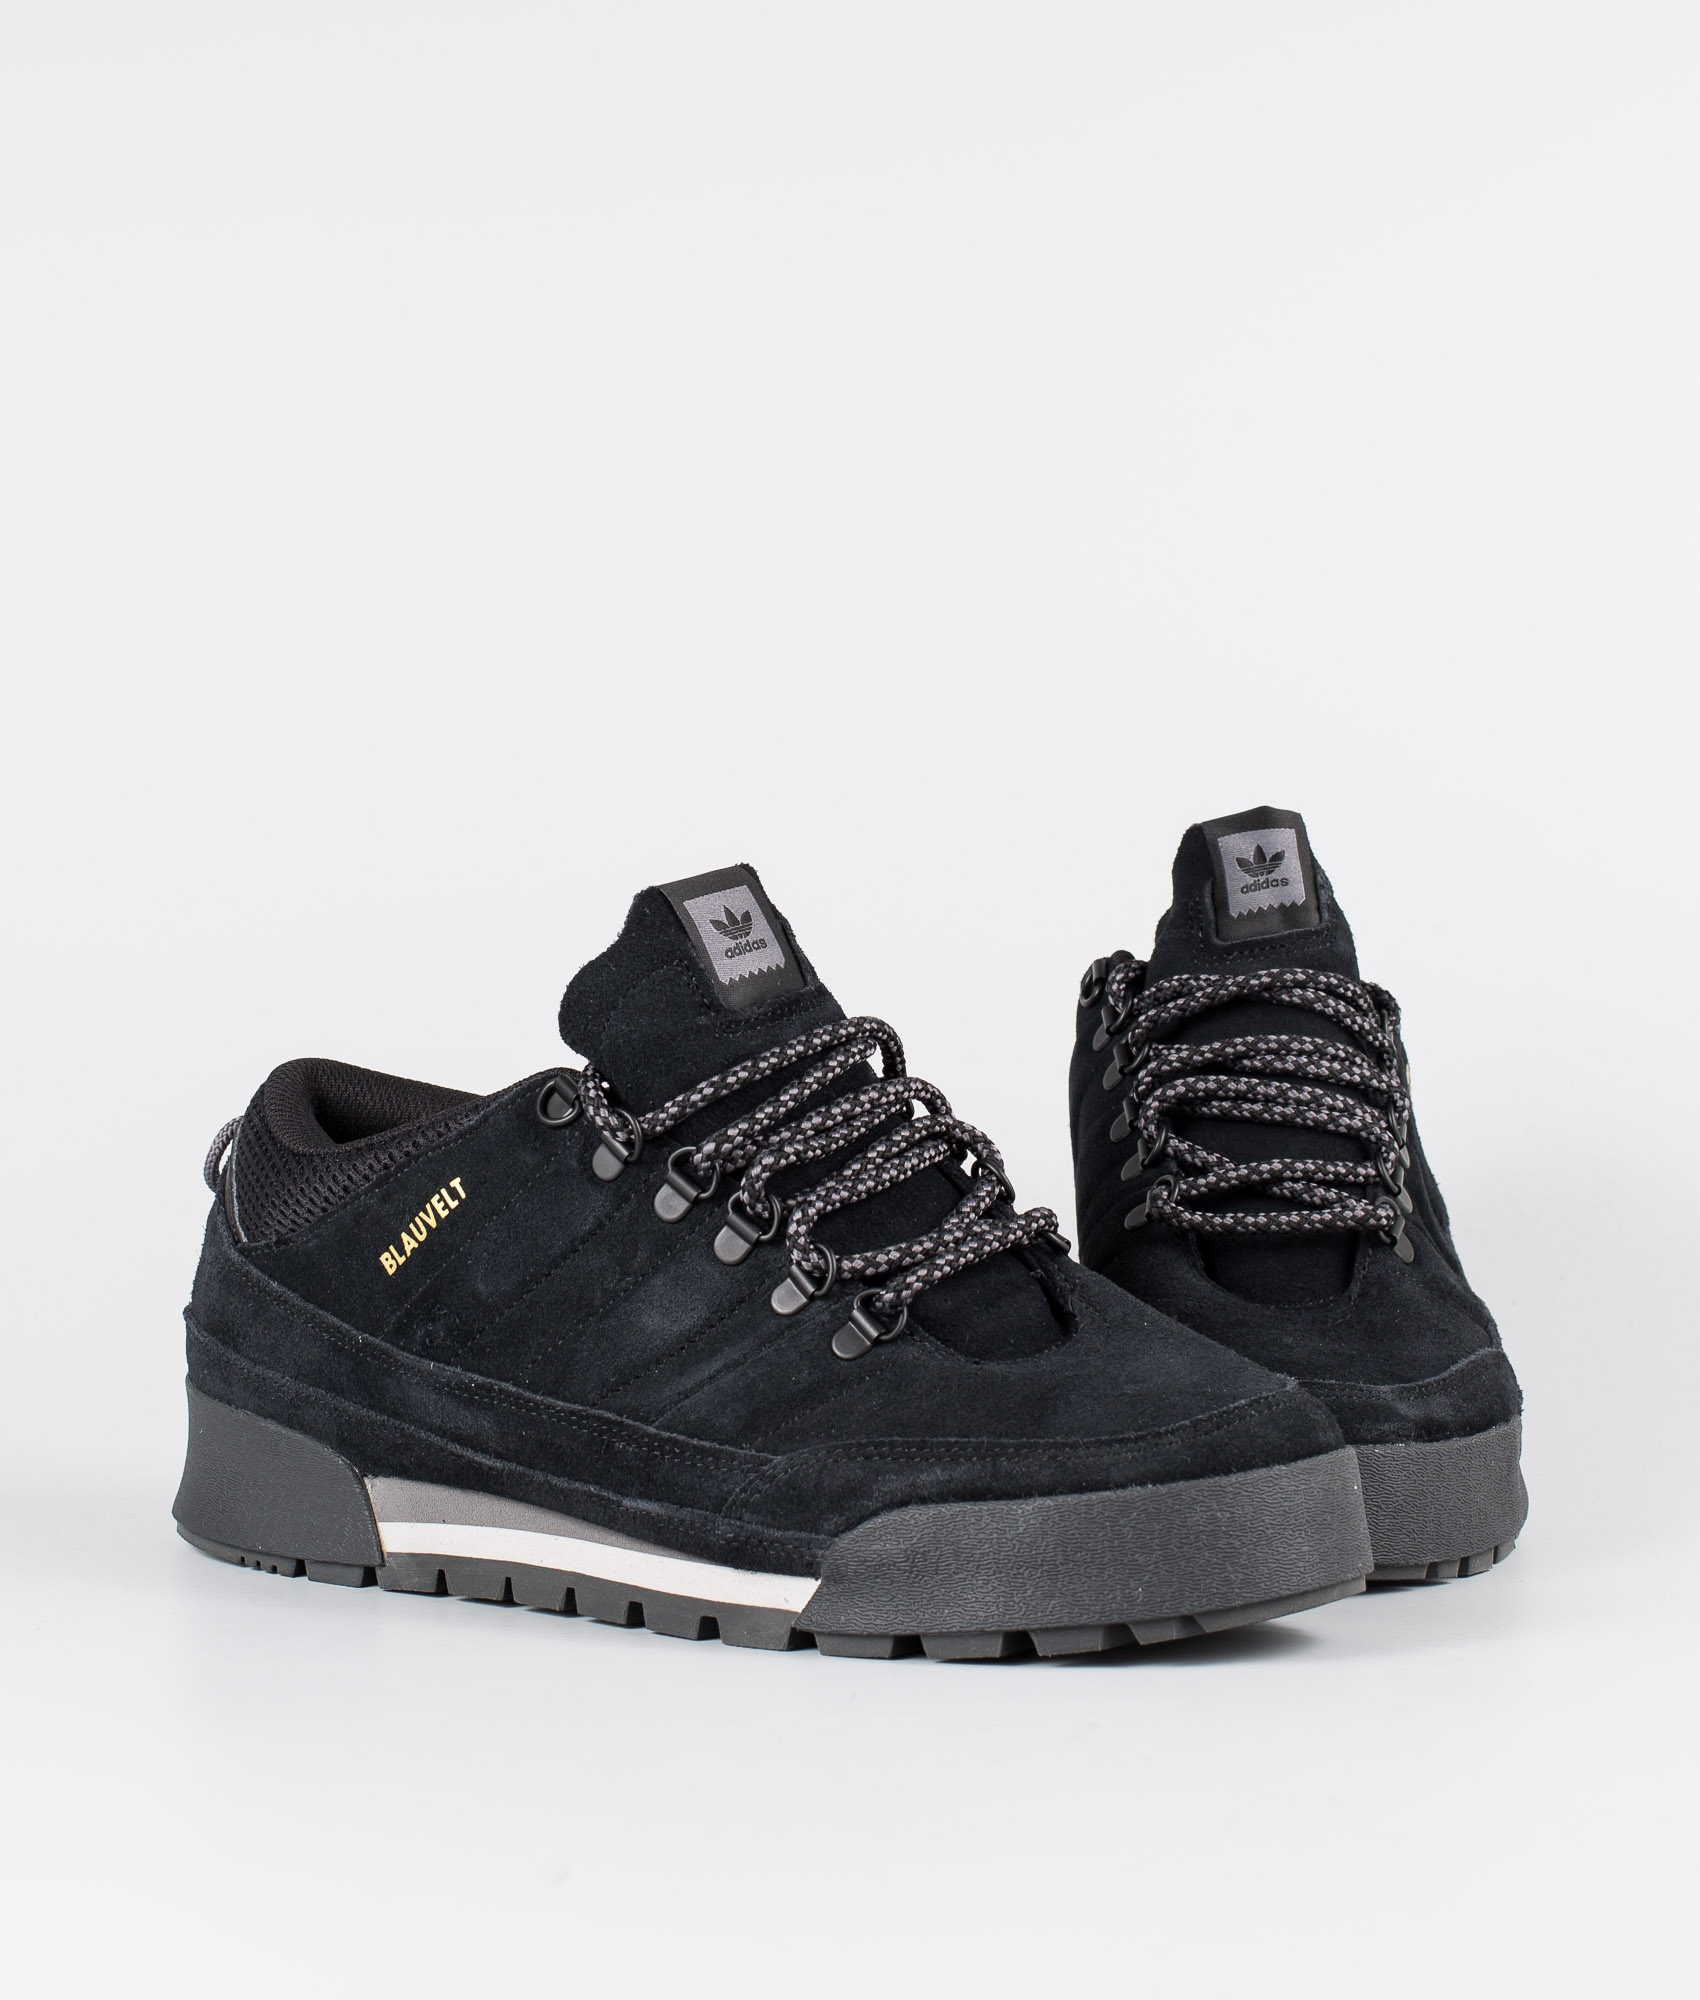 Adidas Snowboarding Jake Boot 2.0 Low Sko Core BlackCarbonGrey Five